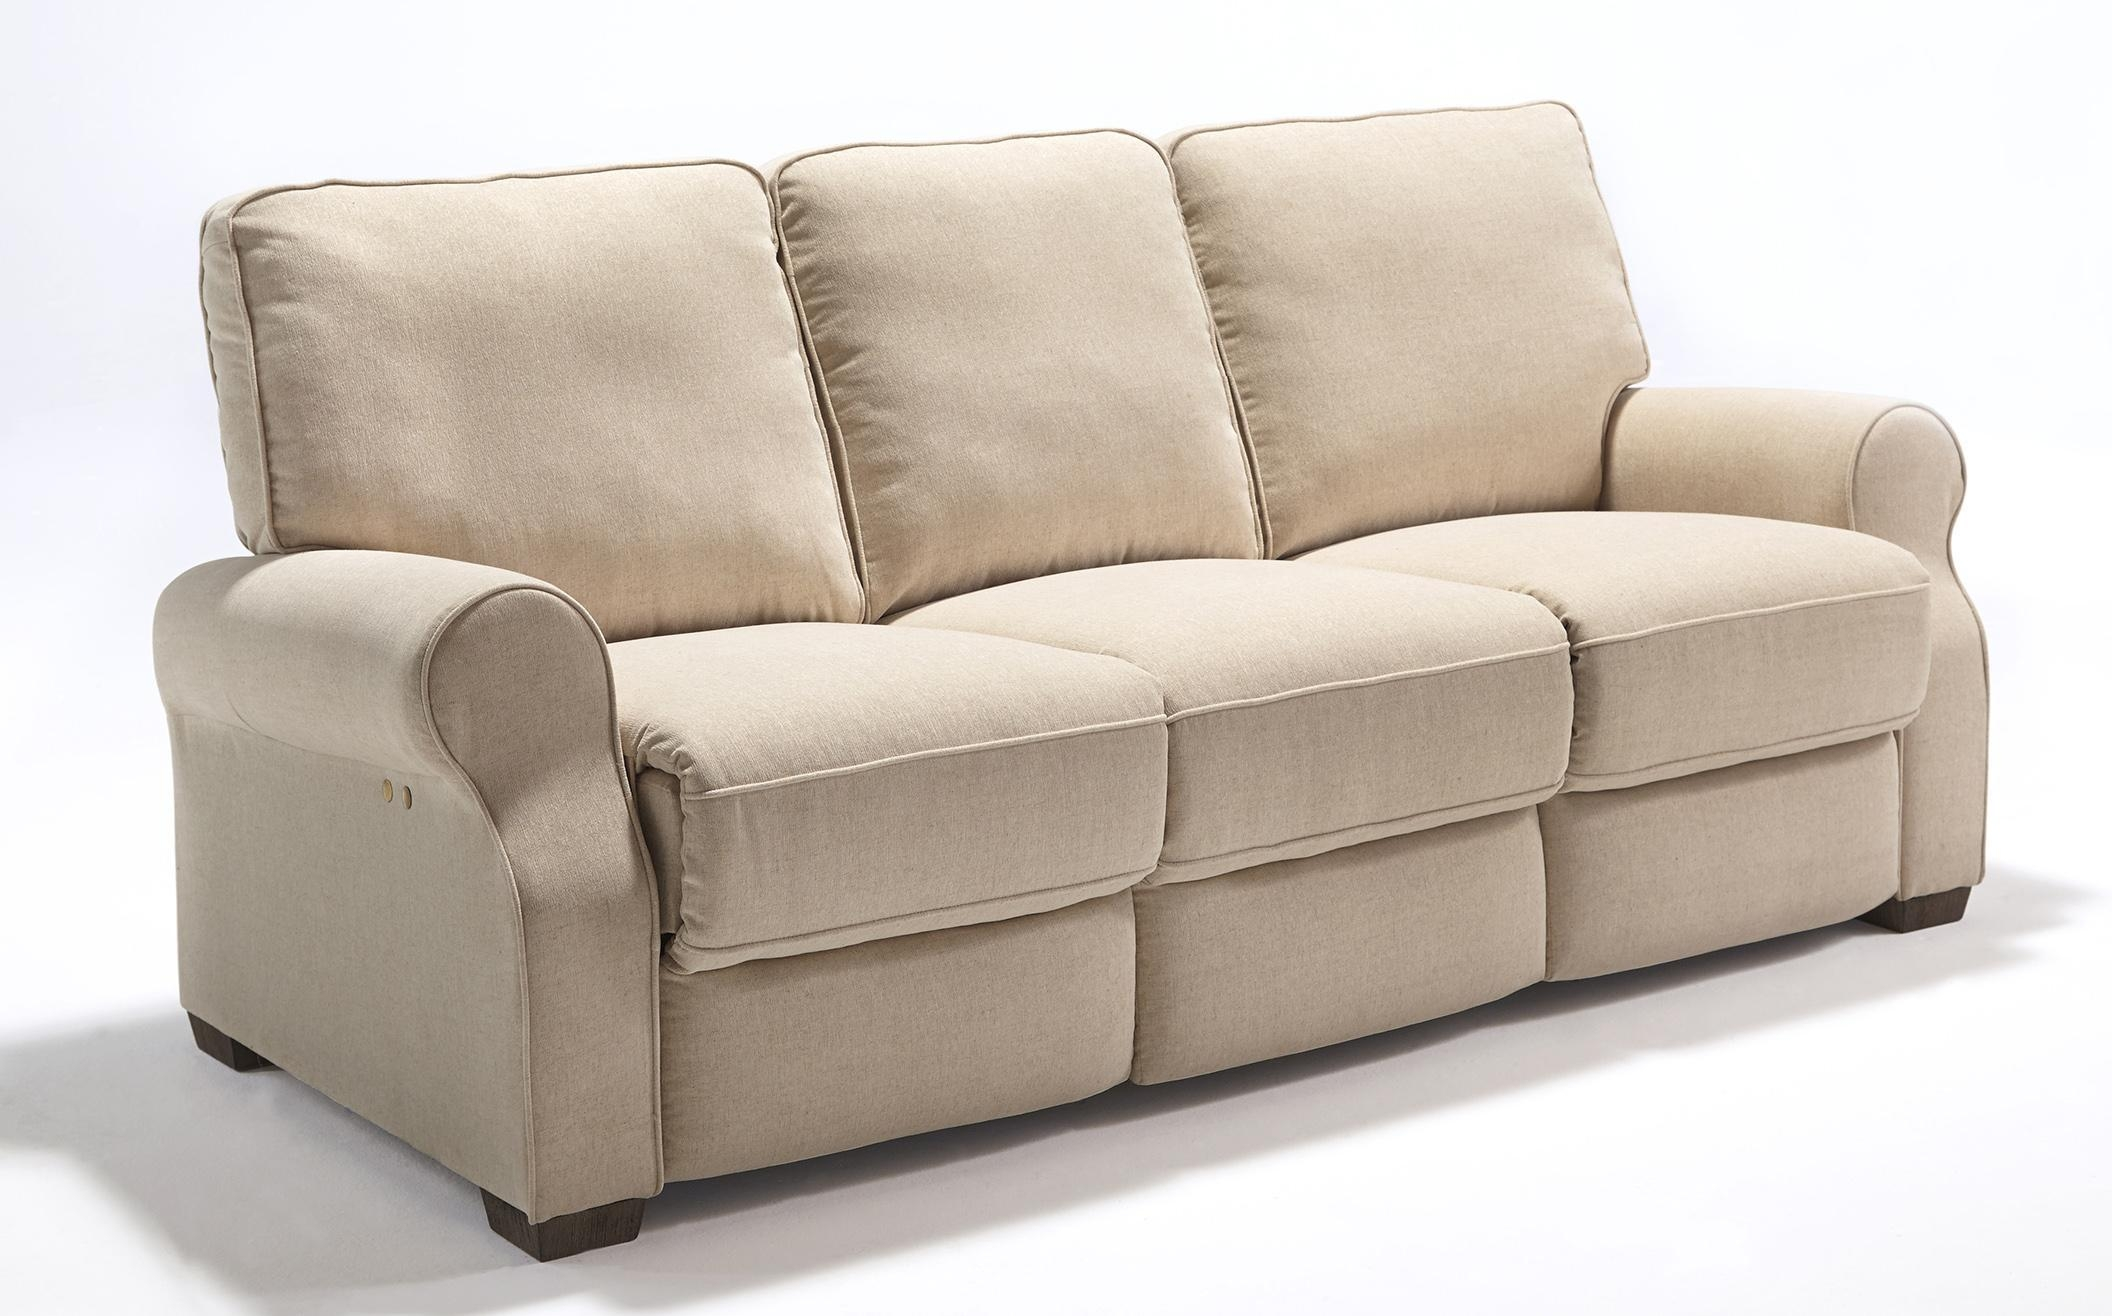 Best Home Furnishings Hattie Traditional Power Reclining Sofa With Within Recliner Sofa Chairs (Image 5 of 20)